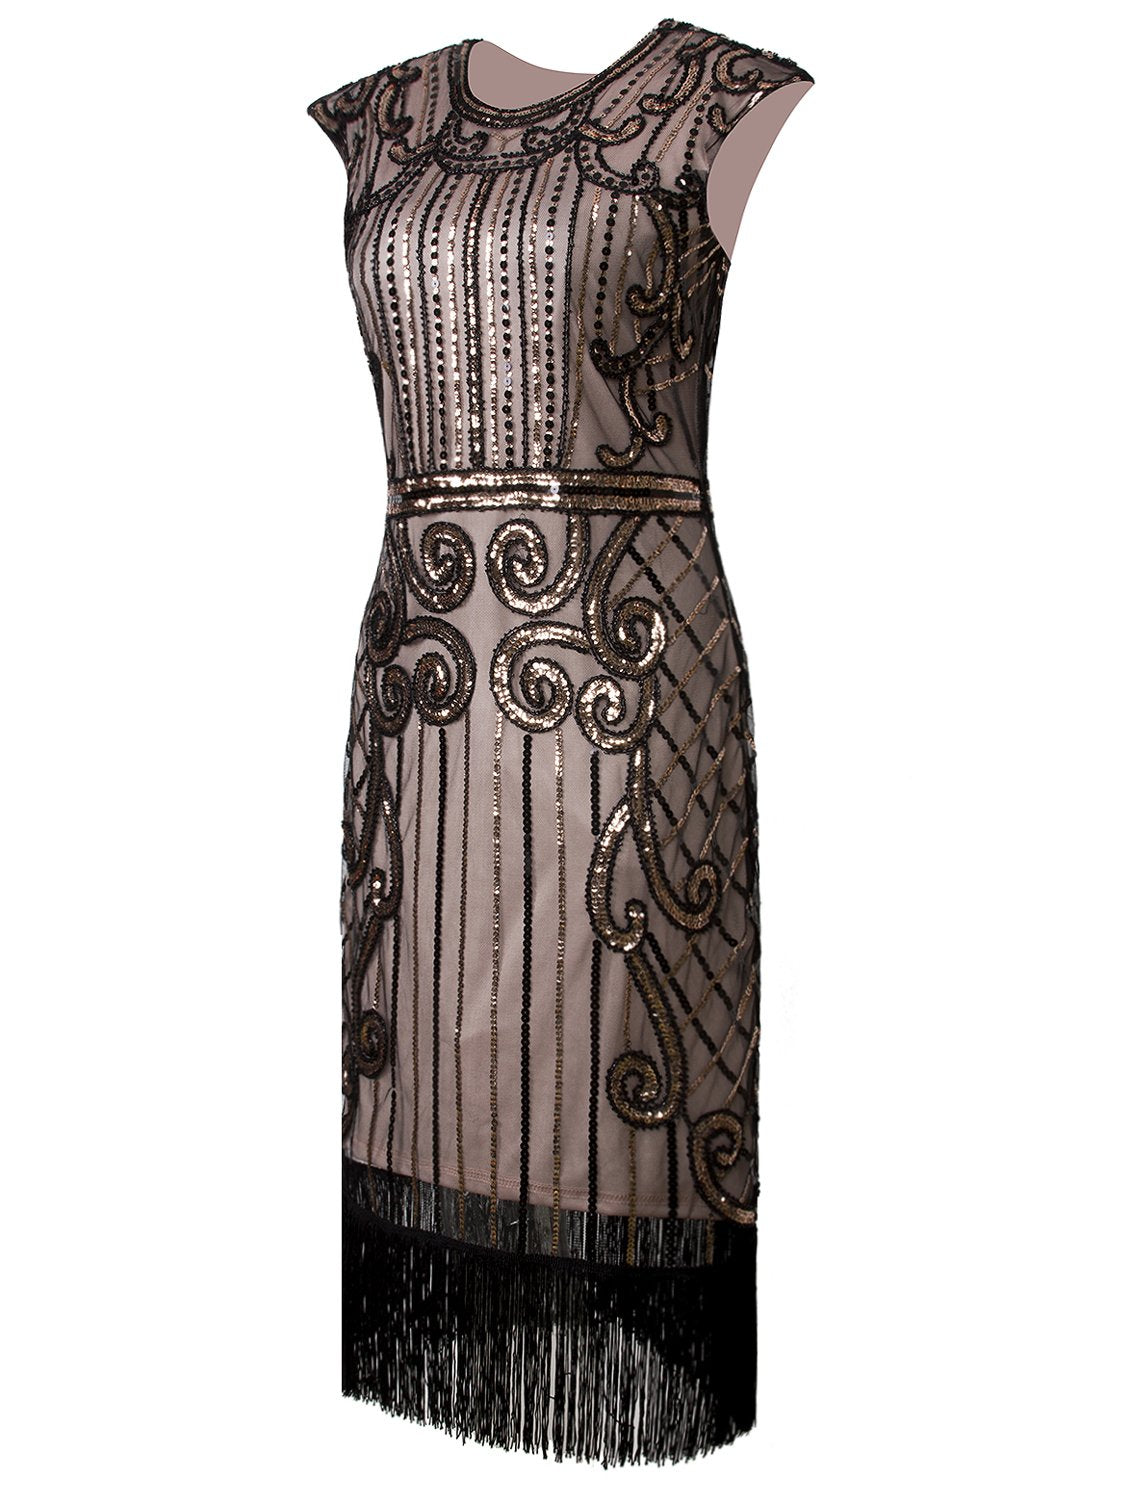 1920s Vintage Inspired Sequin Embellished Fringe Long Gatsby Flapper Dress Black Beige